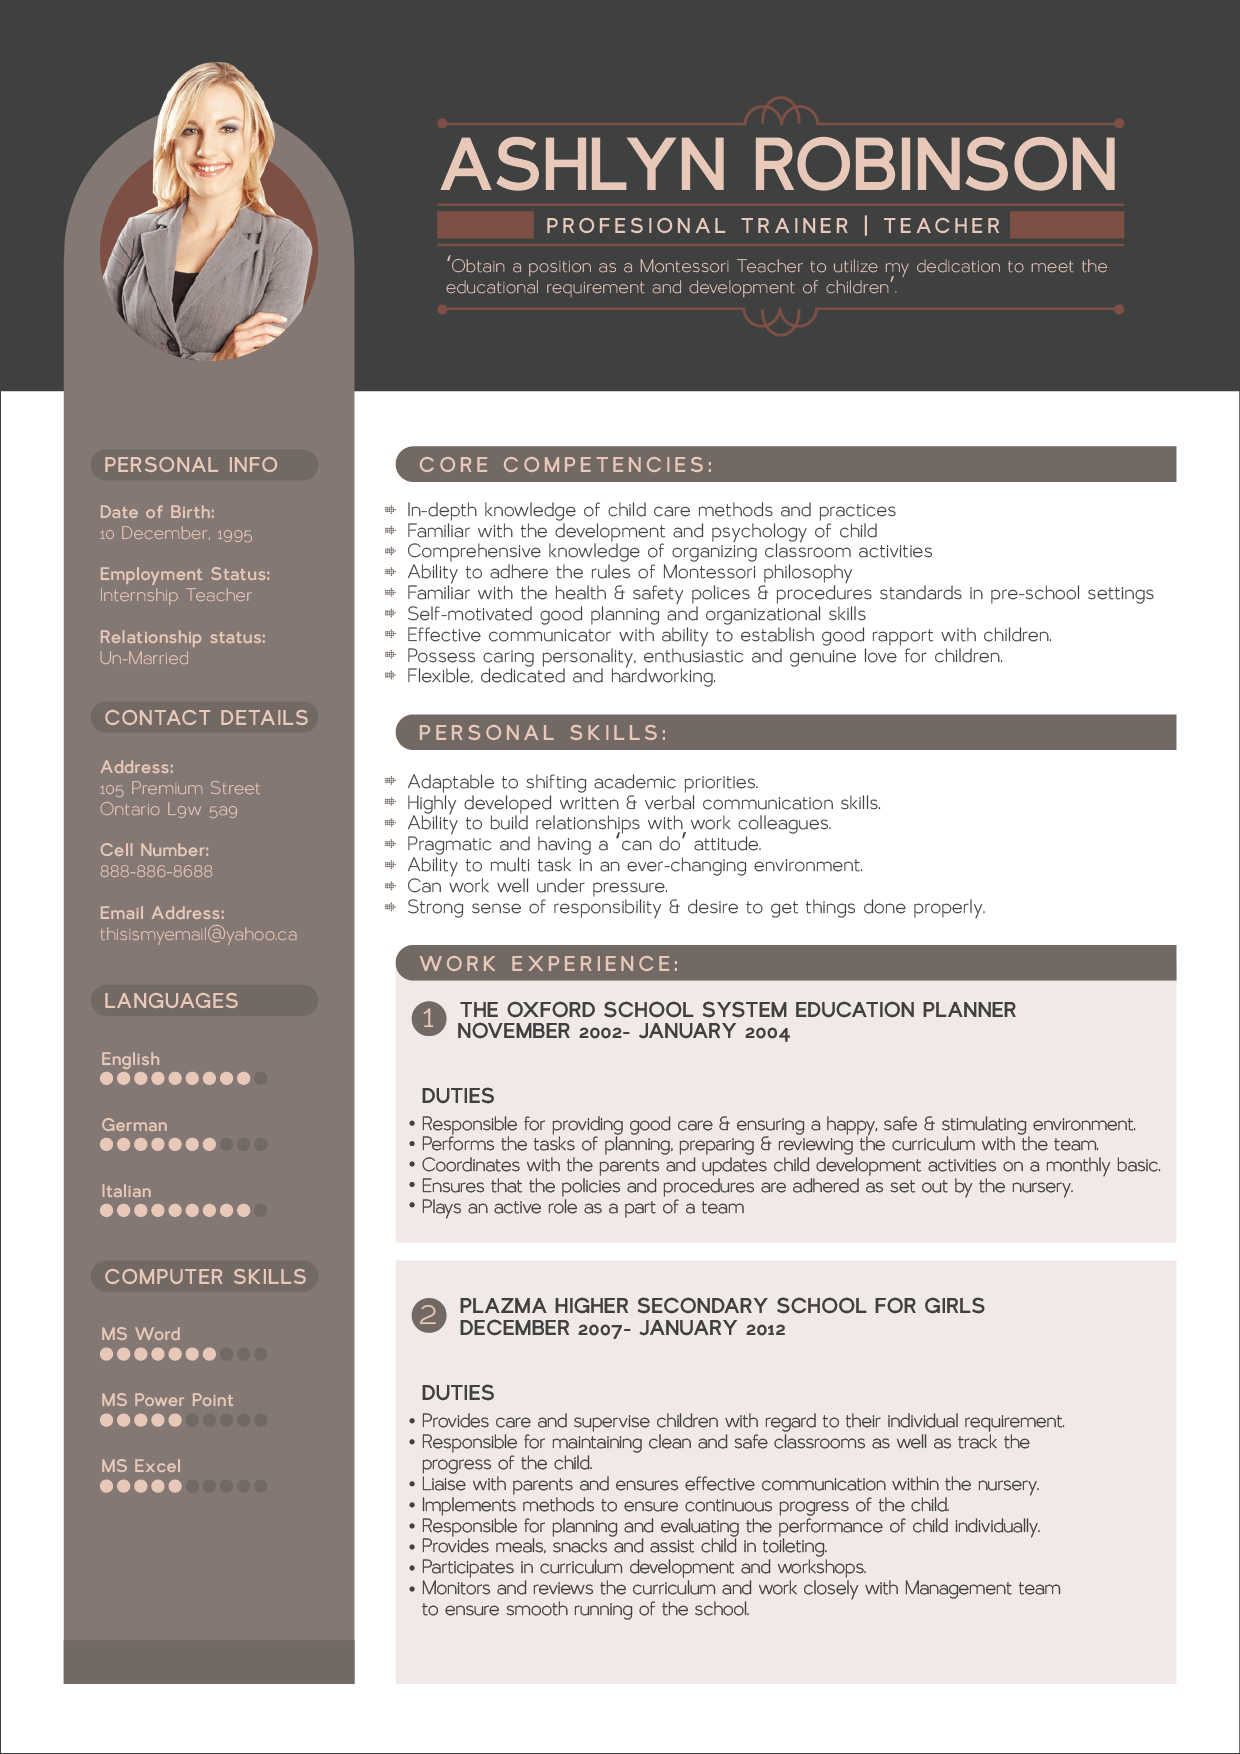 Top Ten Resume Format Free Resume Cv Design Template For Trainers And Teachers